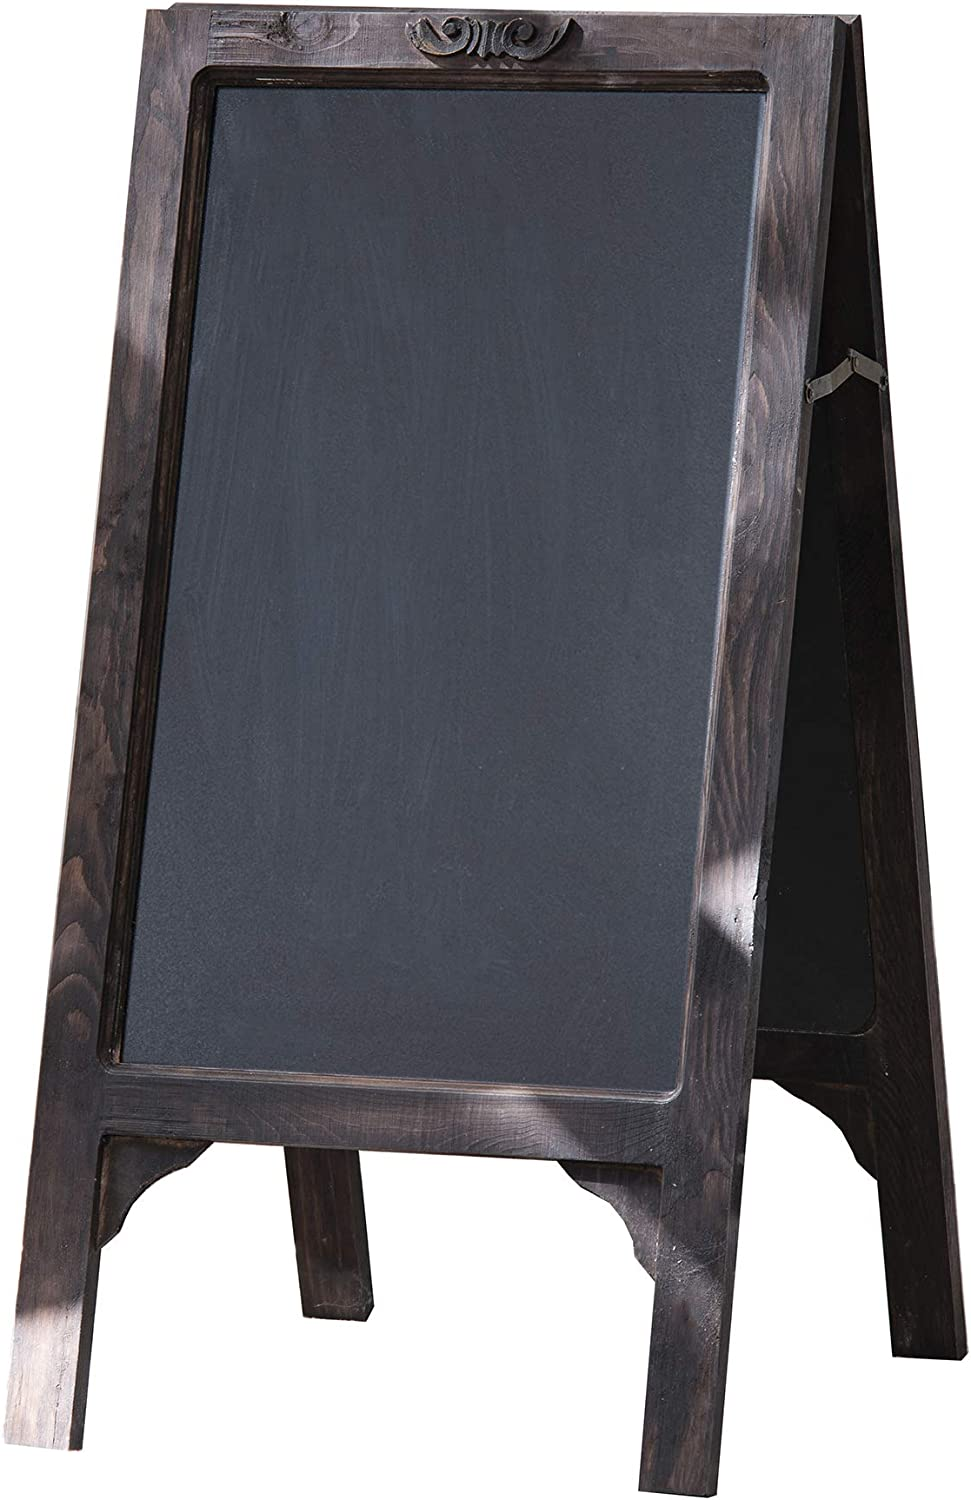 AB Home Decor Wooden Framed Standing Chalkboard Sign 20x25 inch